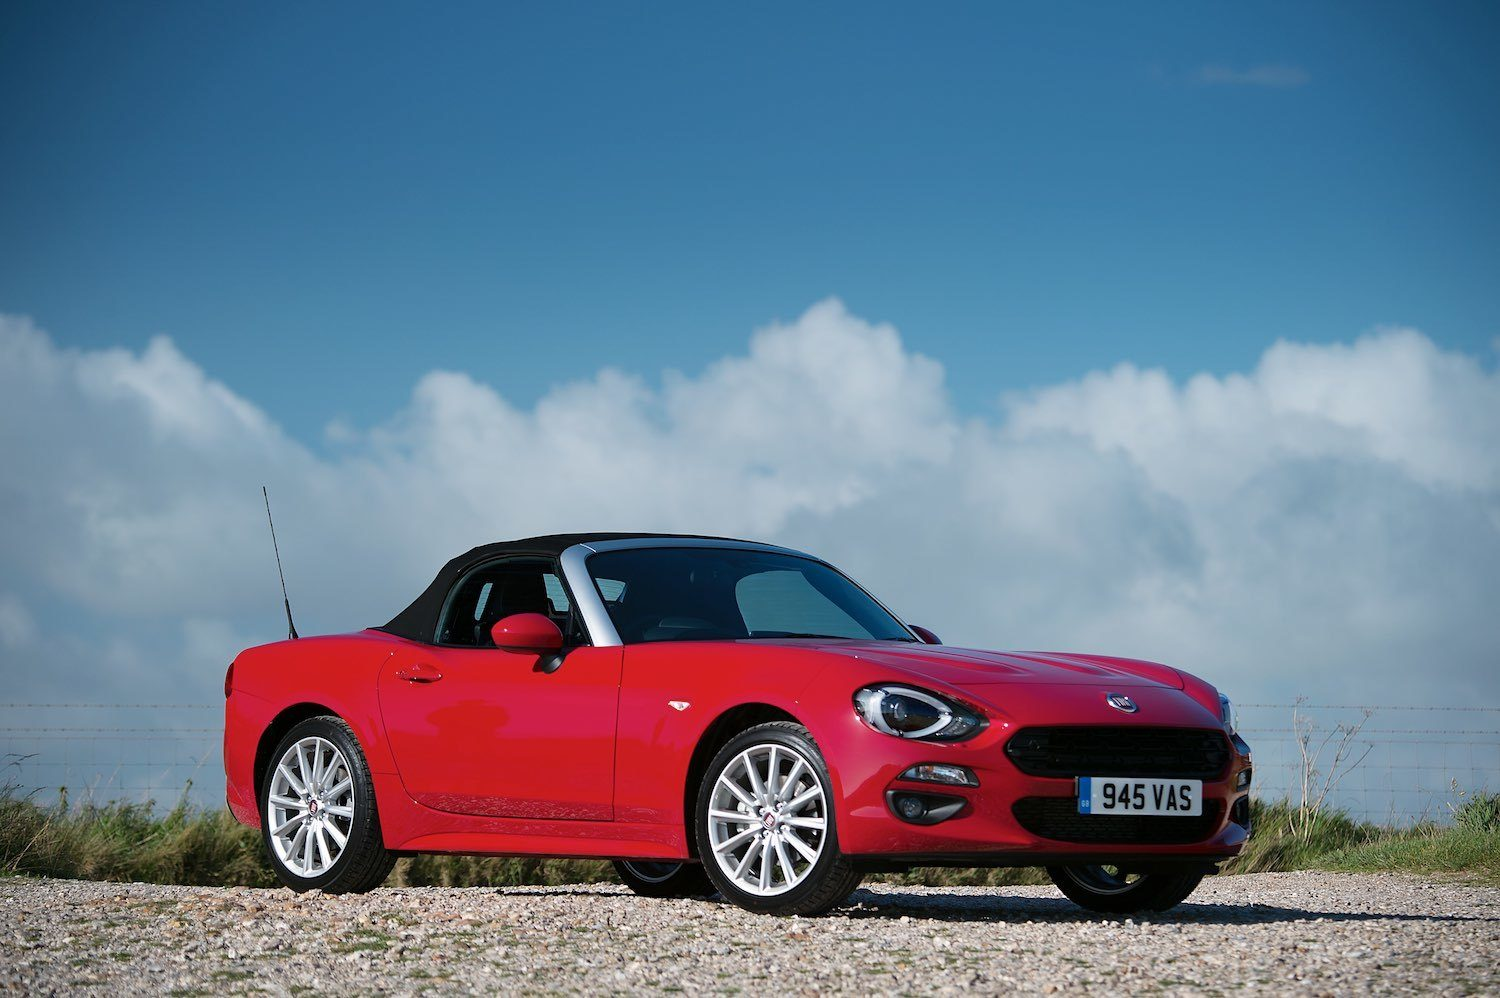 Tom Scanlan reviews the Fiat 124 Spider for Drive 8